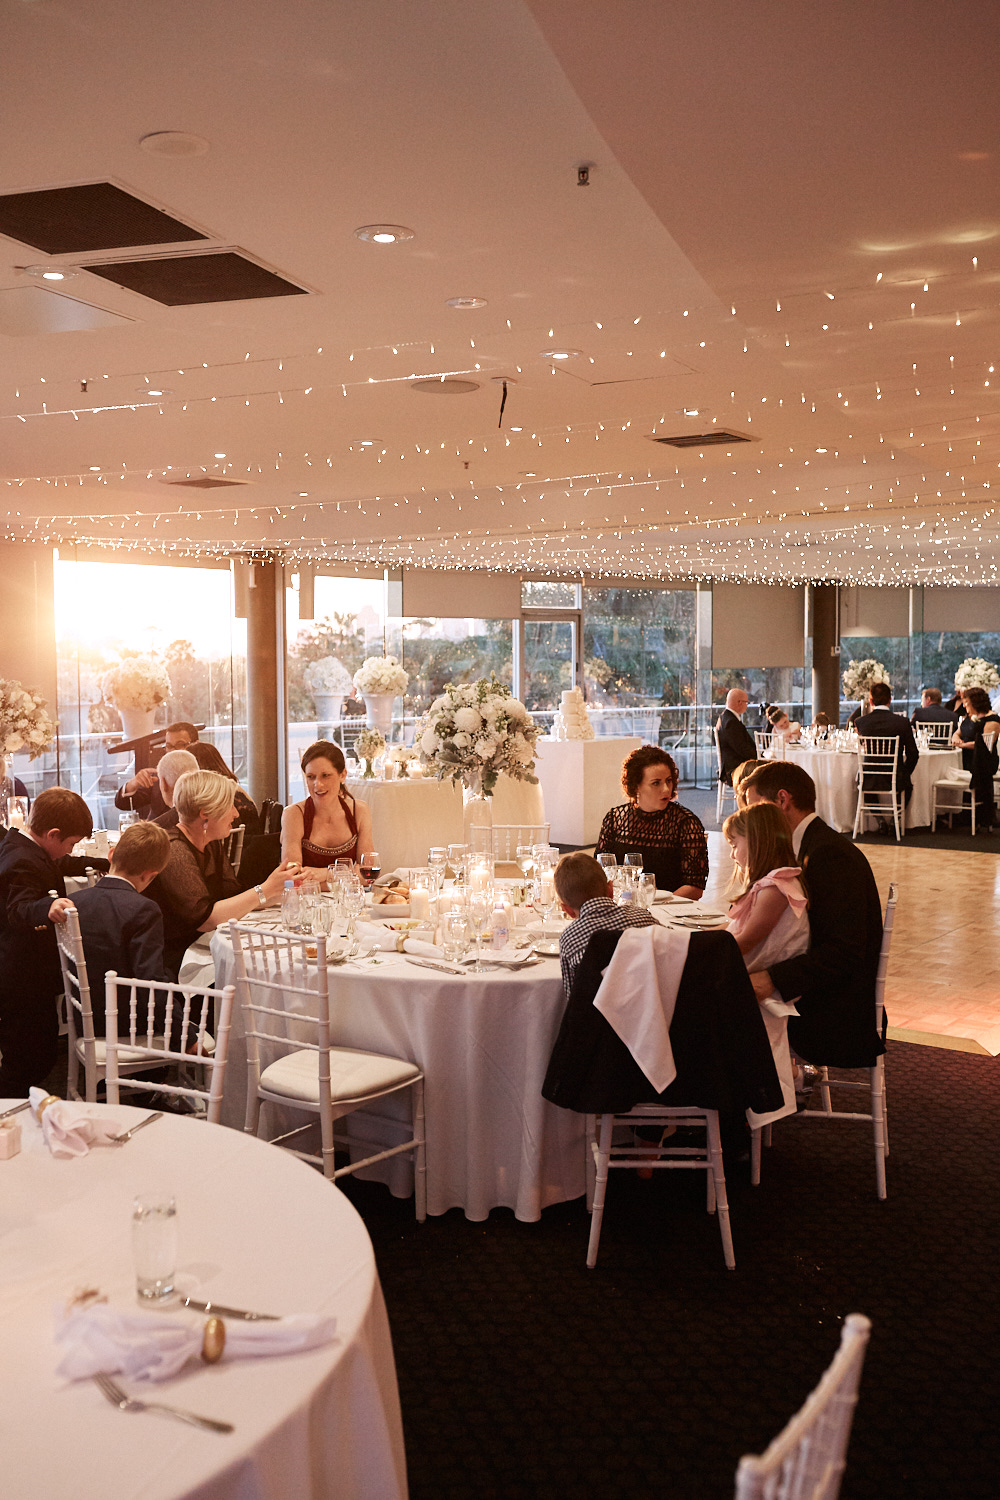 Reception guests sitting at tables in the Taronga Centre by Blue Mountains wedding photographer Joshua Witheford